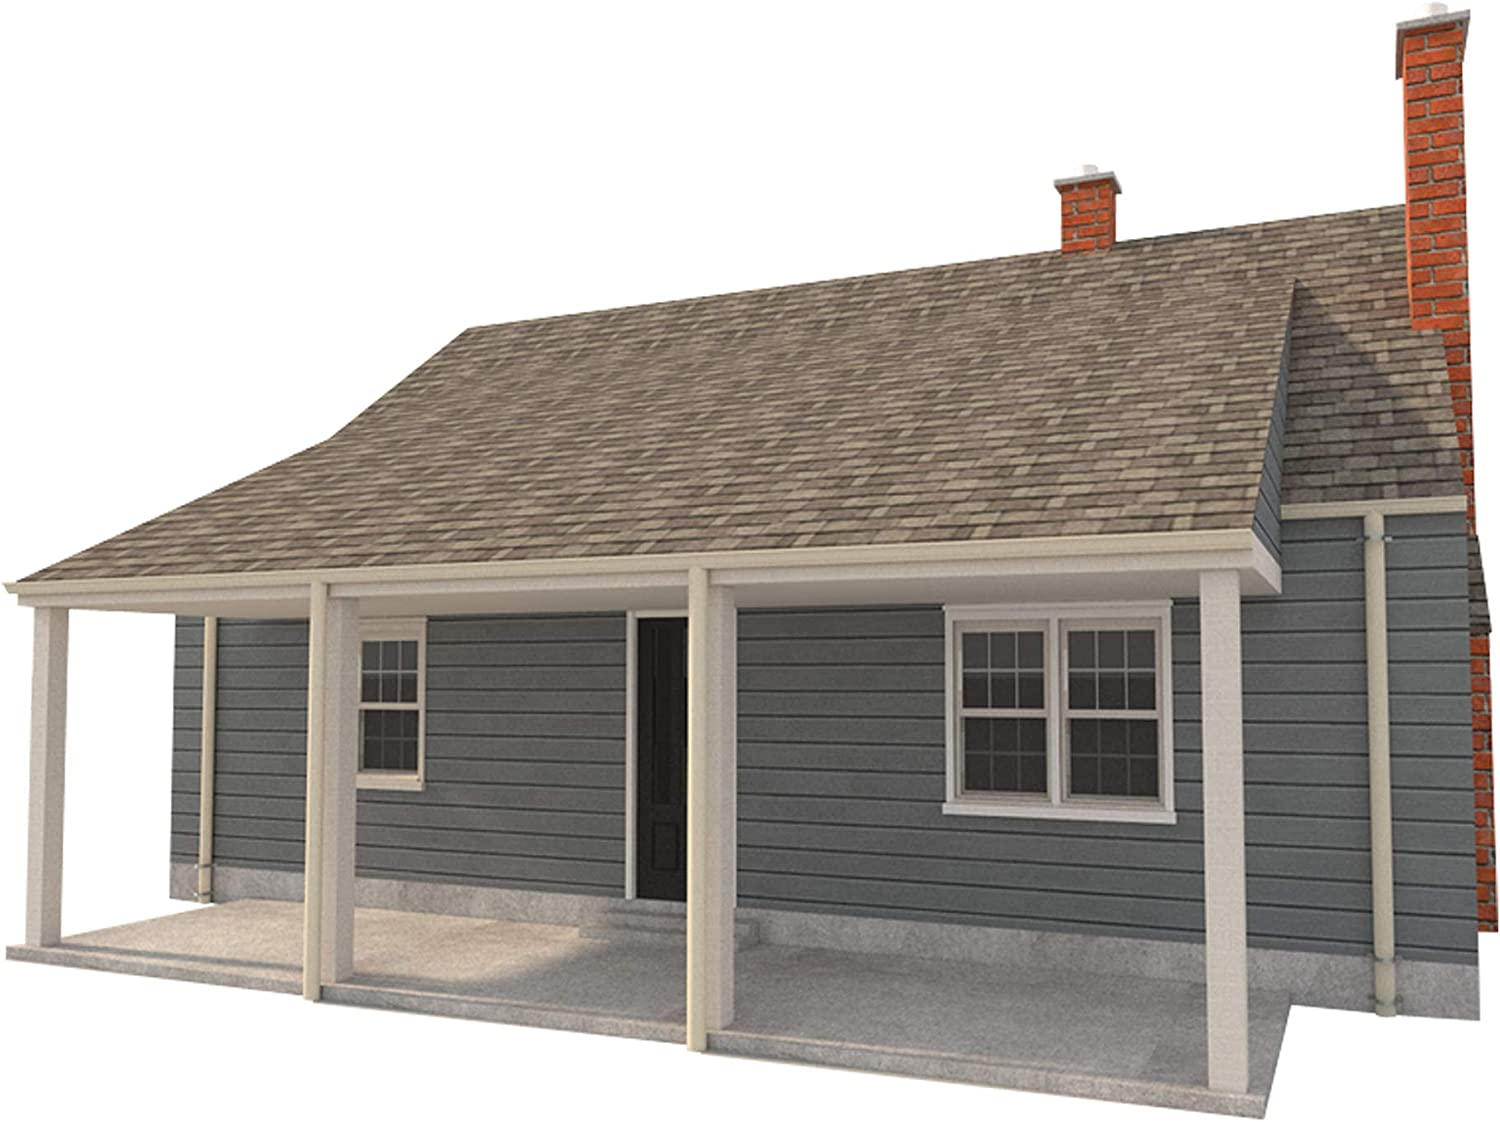 2 Story Farmhouse Plans DIY 3 Bedroom Farm Home 832 sq//ft Build Your Own